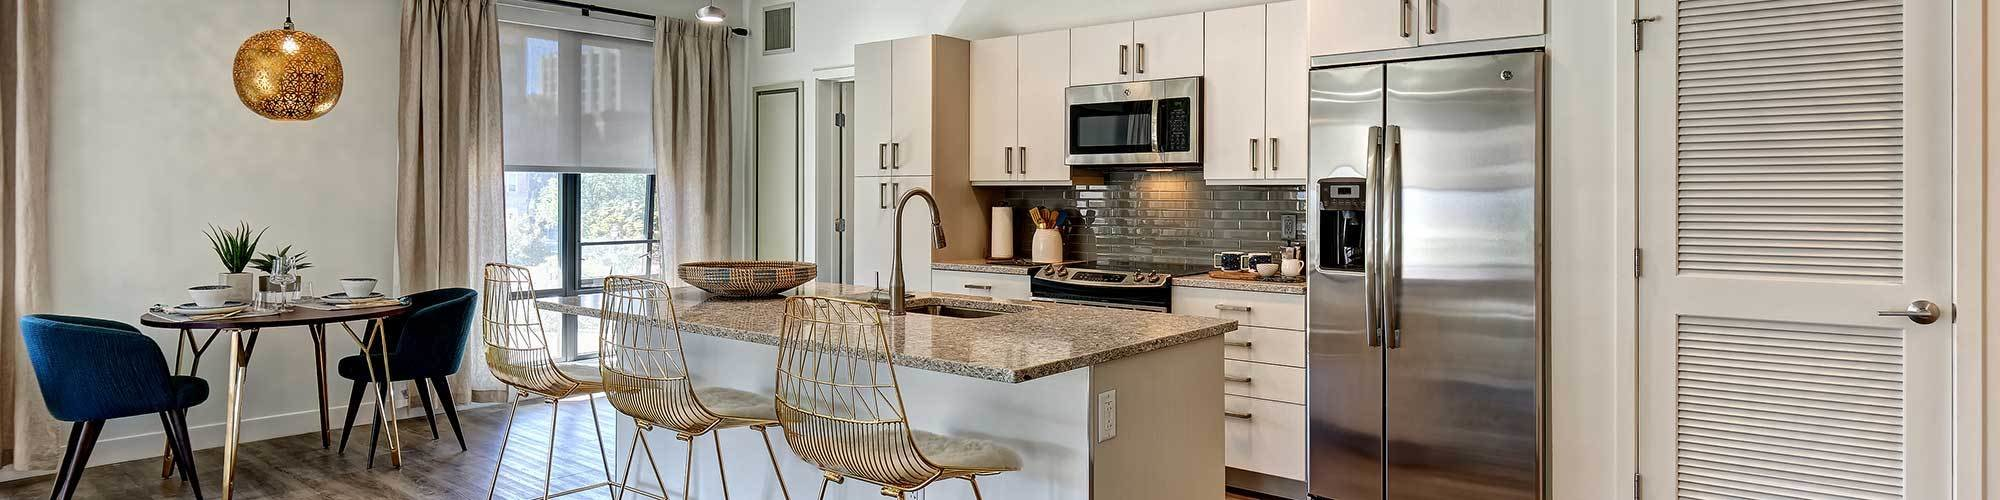 Best Luxury Studio 1 2 Bedroom Apartments In Stamford Ct With Pictures